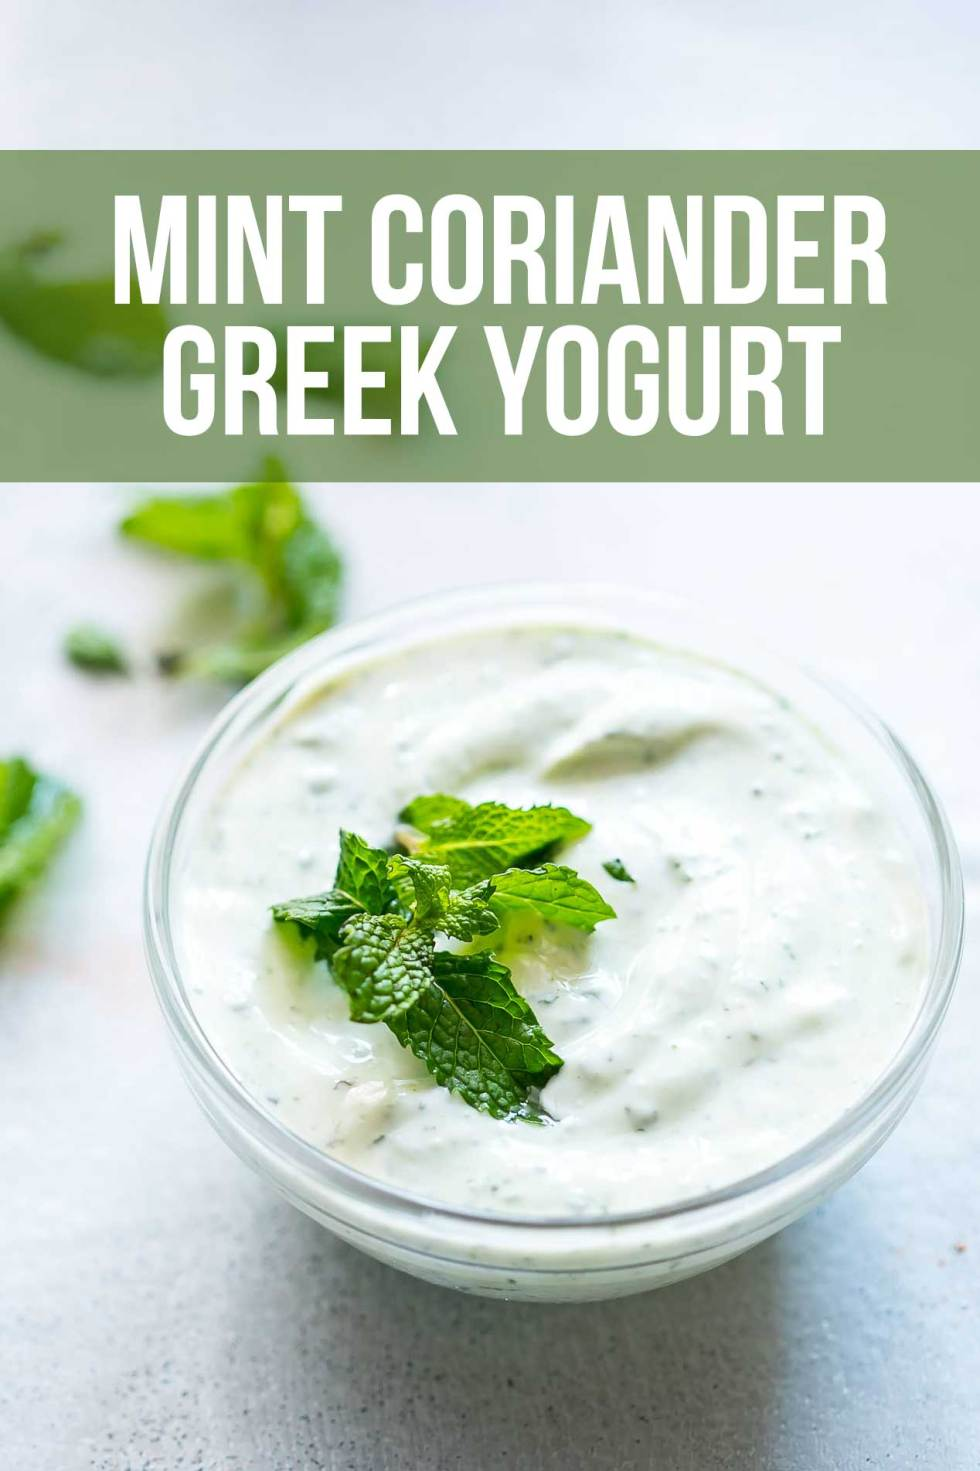 It's a myth that Greek yogurt should always be sweetly flavored. This mint coriander Greek Yogurt packs a ton of flavor and is a light take on mint coriander raita. It's delicious as a snack and can even be used as a dip for crackers, veggie sticks or had as is.